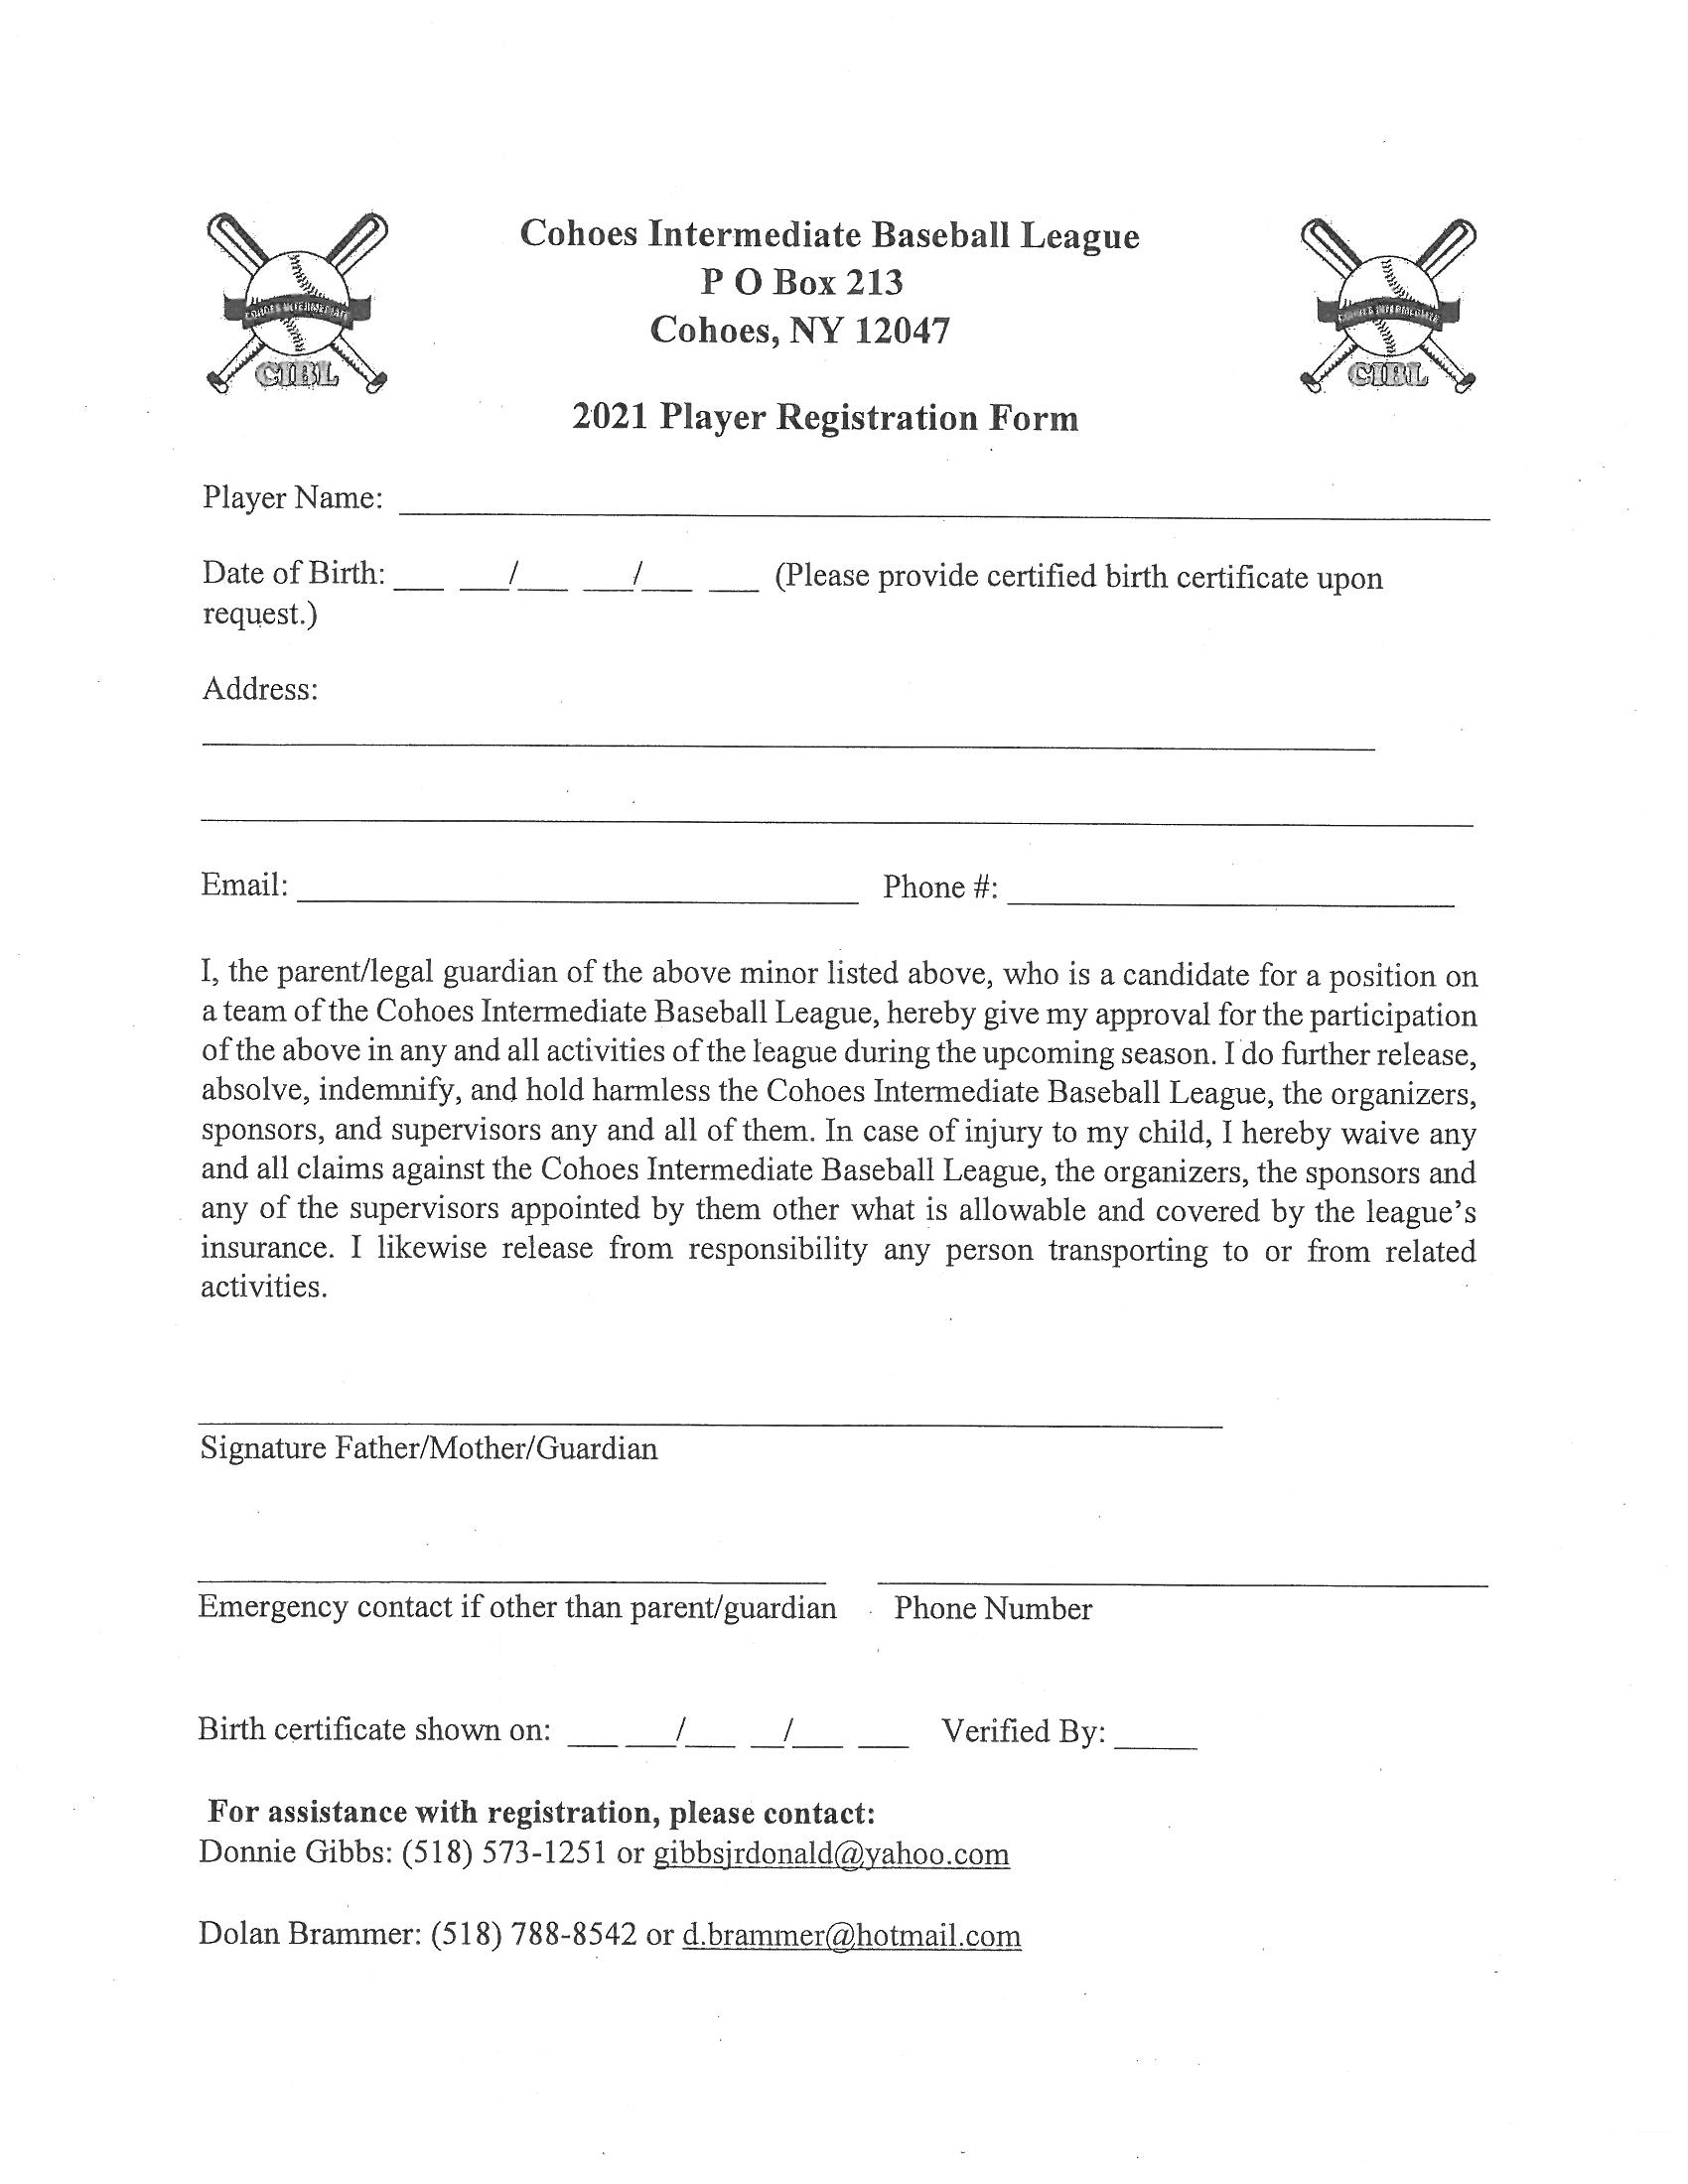 Cohoes Intermediate Baseball Registration Form